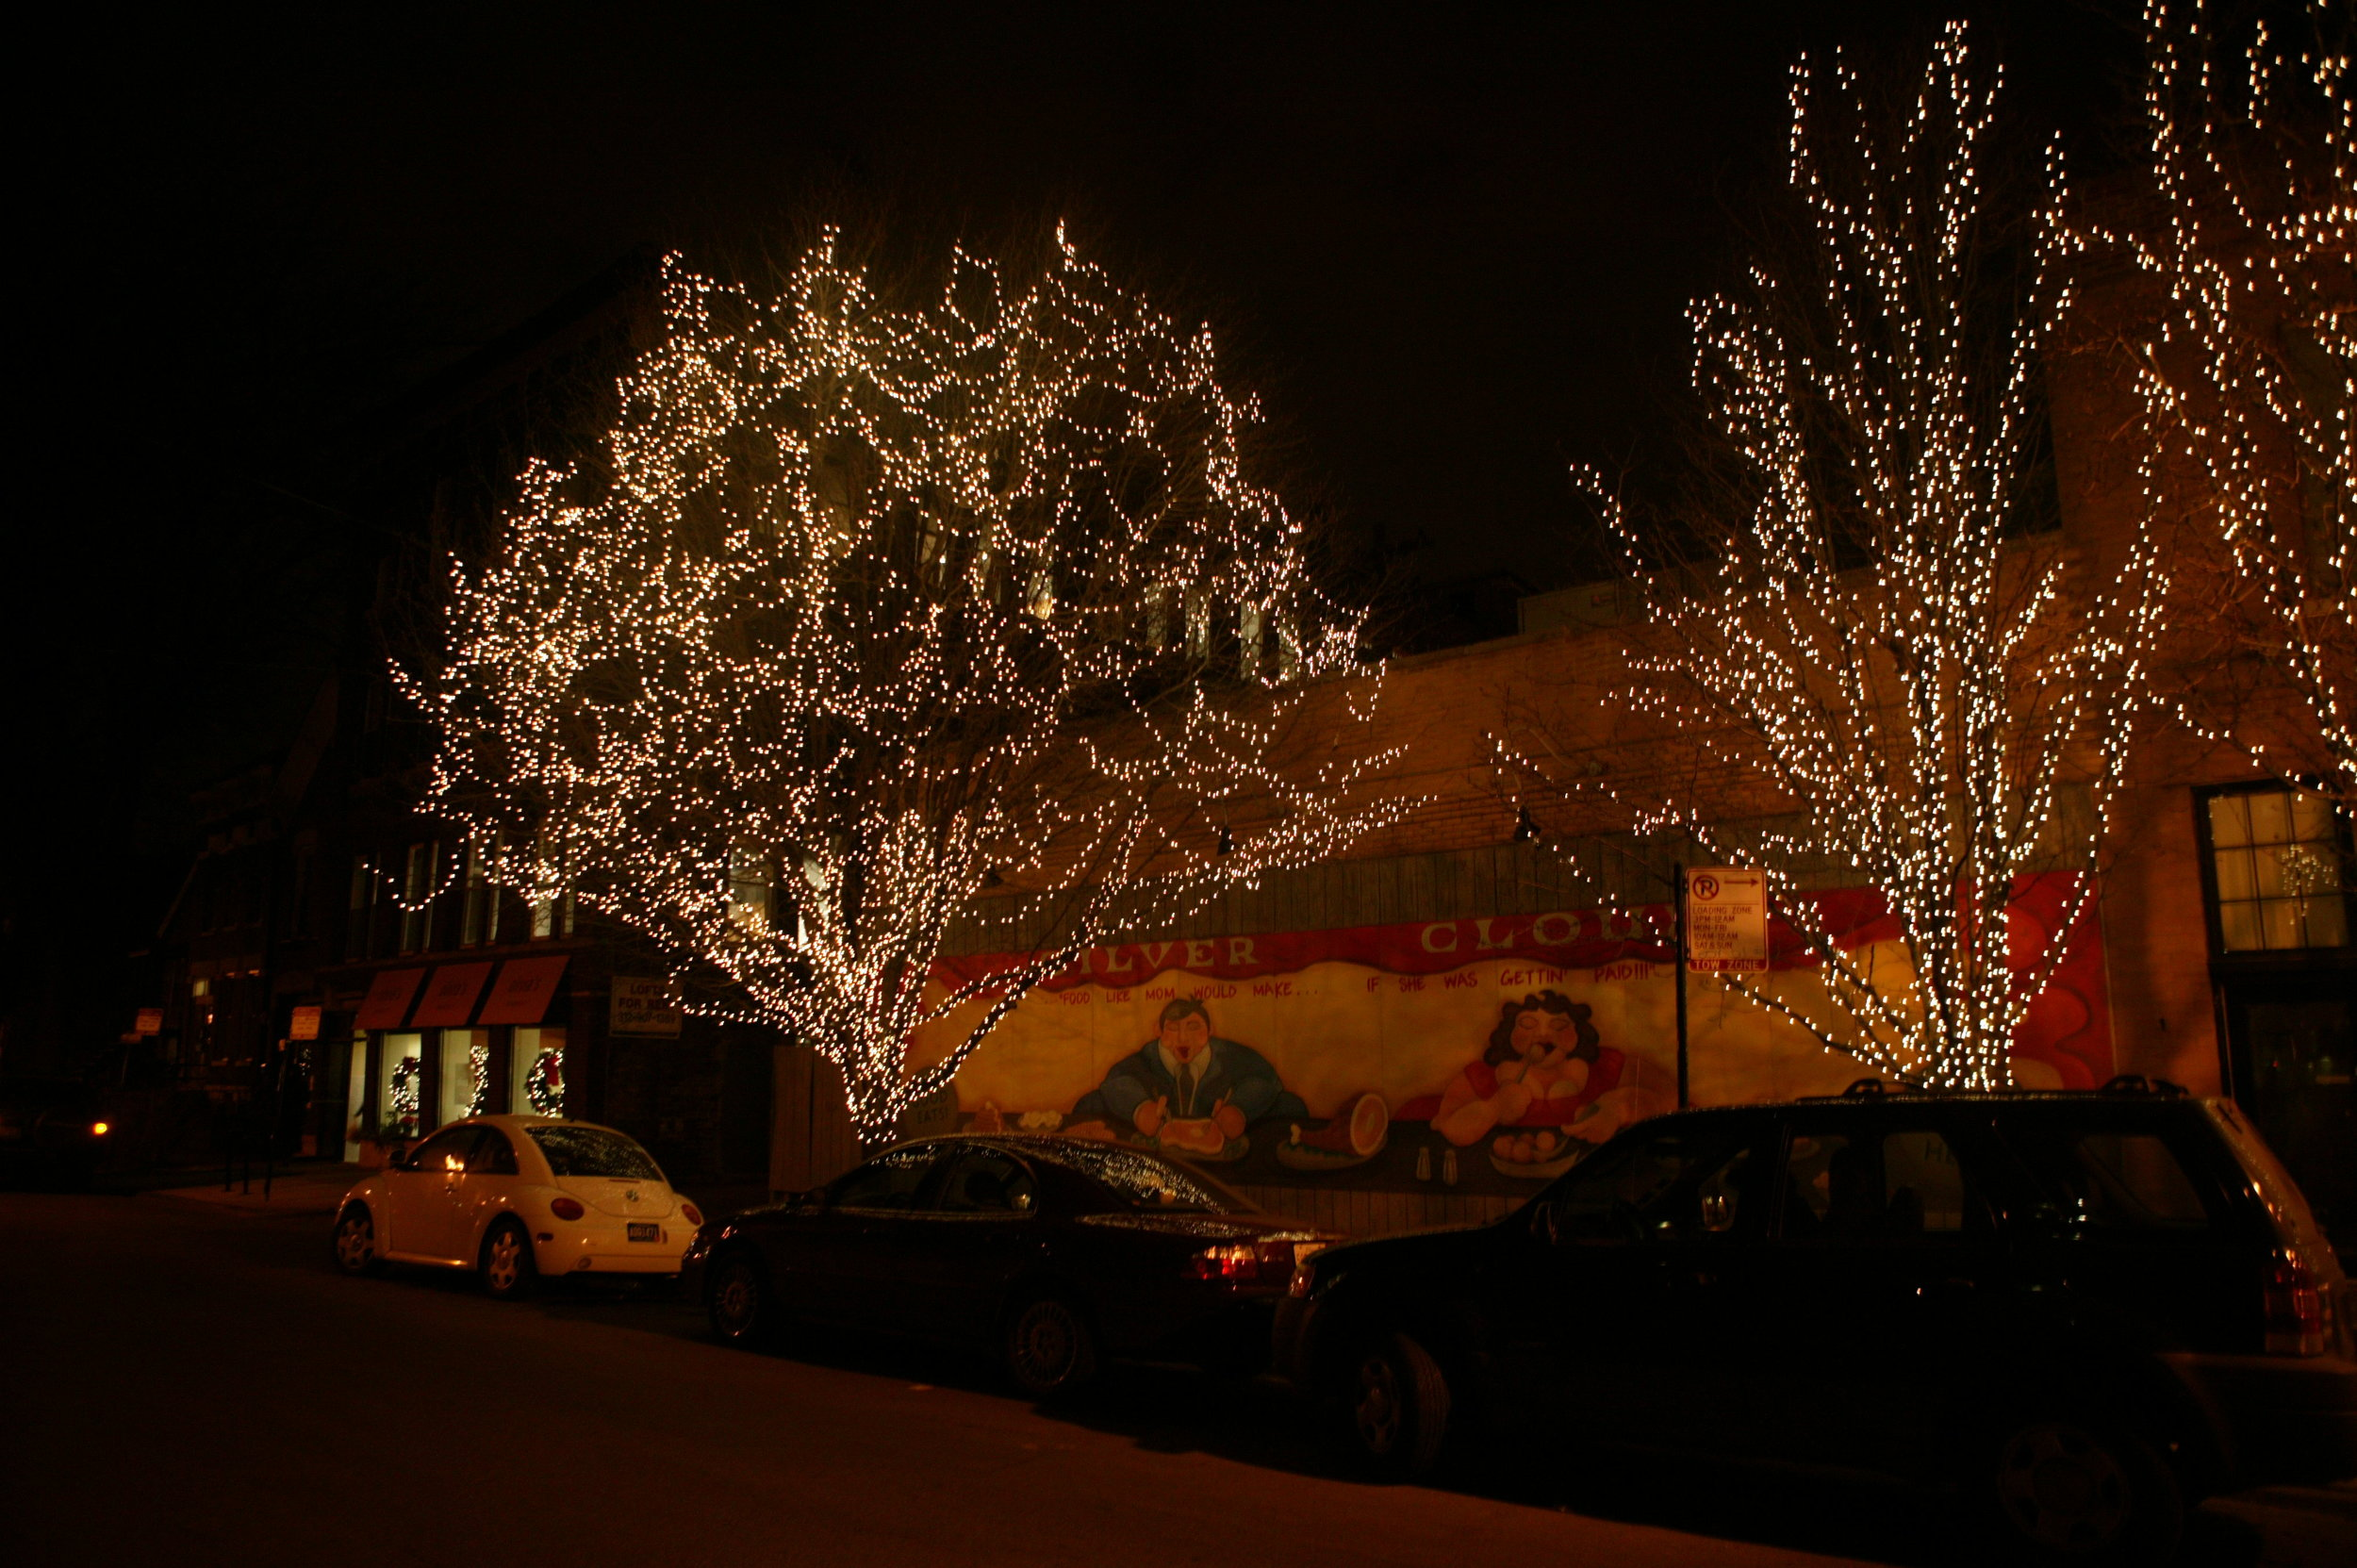 Commercial Holiday Lighting for Local Business